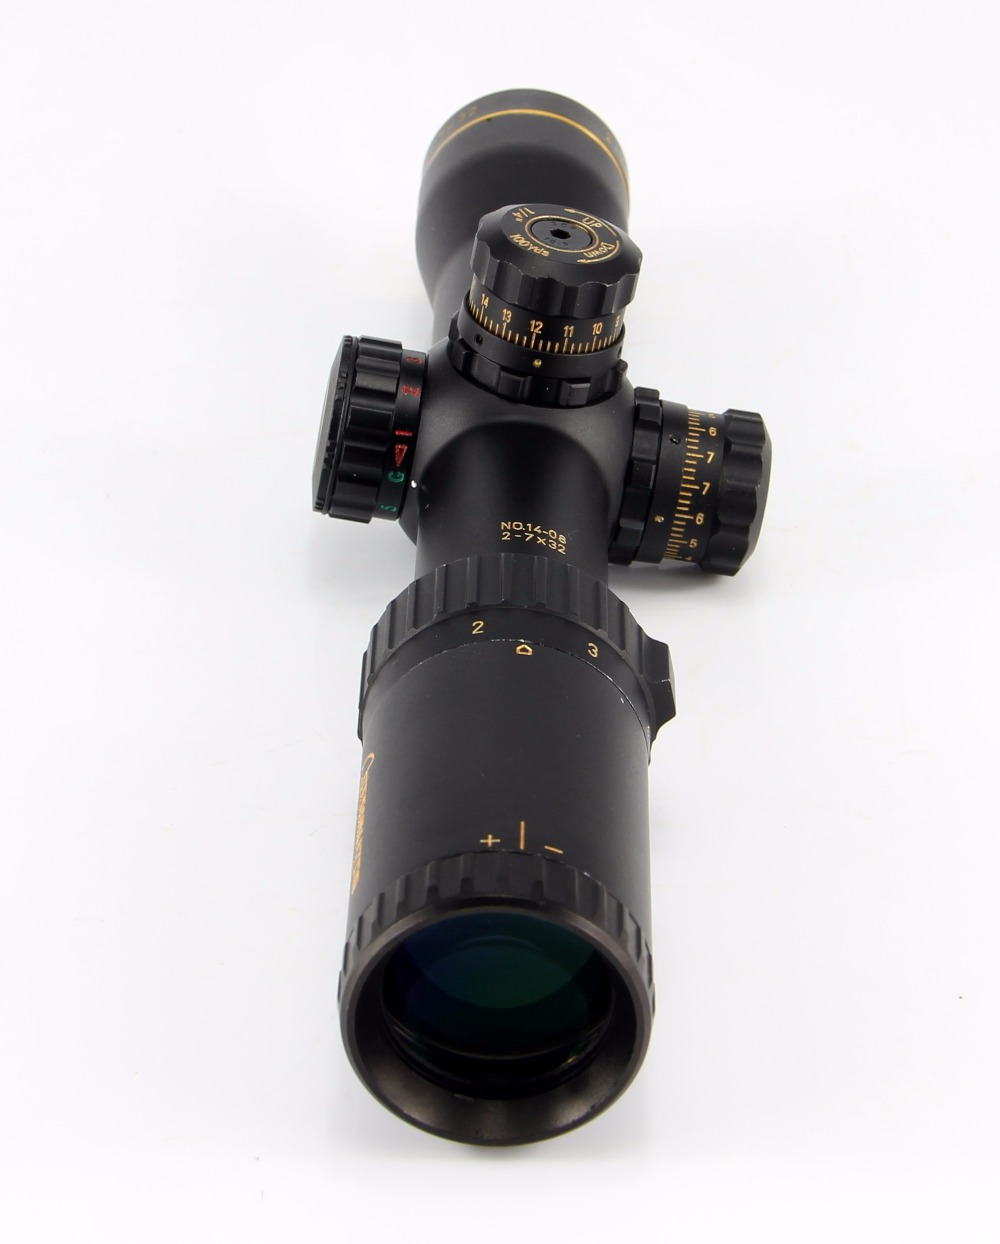 Hunting Optics 2-7X32 EG Crosshair Mil Dot Military Tactical Riflescope Red Green Illuminated Hunting Rifle Scope with Mounts hot sale 2 5 10x40 riflescope illuminated tactical riflescope with red laser scope hunting scope